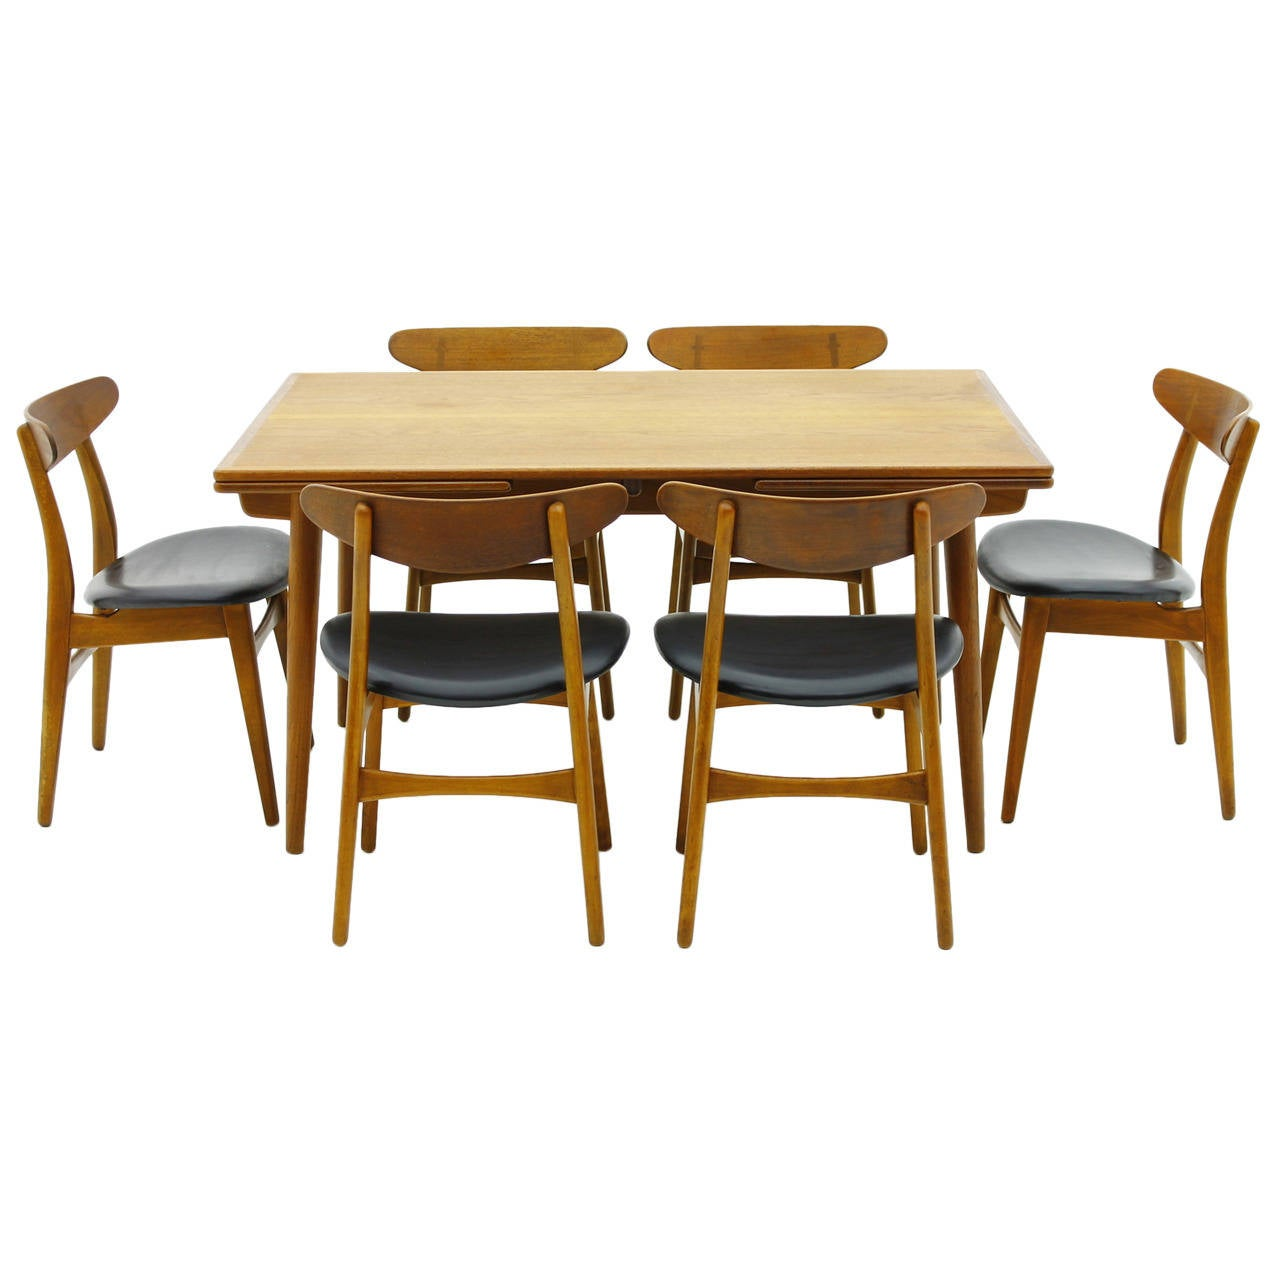 Dining Room Table With Tuck Under Chairs Teak dining  : 2298372l from ubermed.us size 1280 x 1280 jpeg 85kB